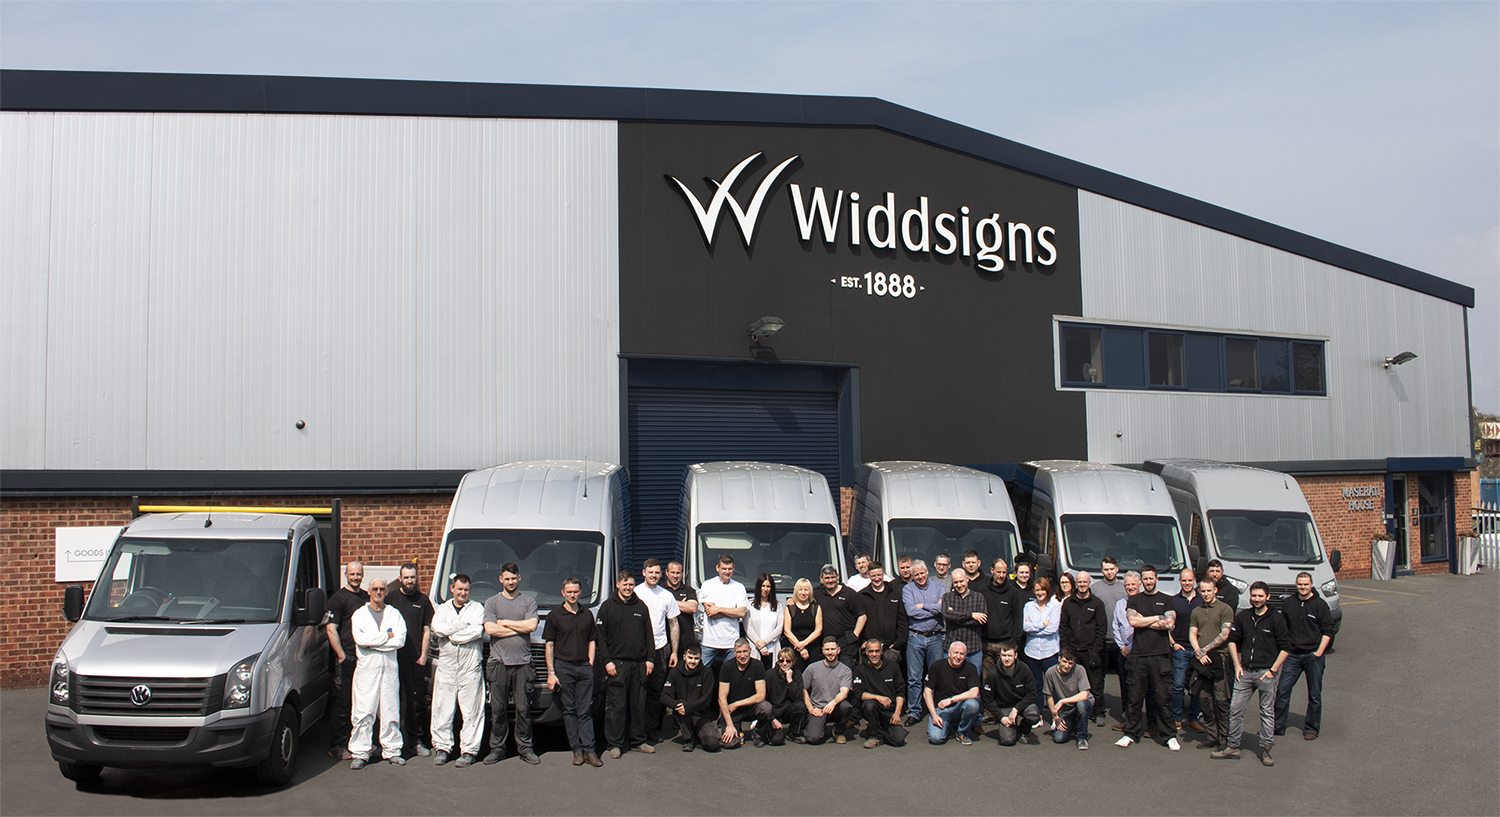 We've recently given our HQ a refurbish which was a great reason for a team photo with the Widd fleet!